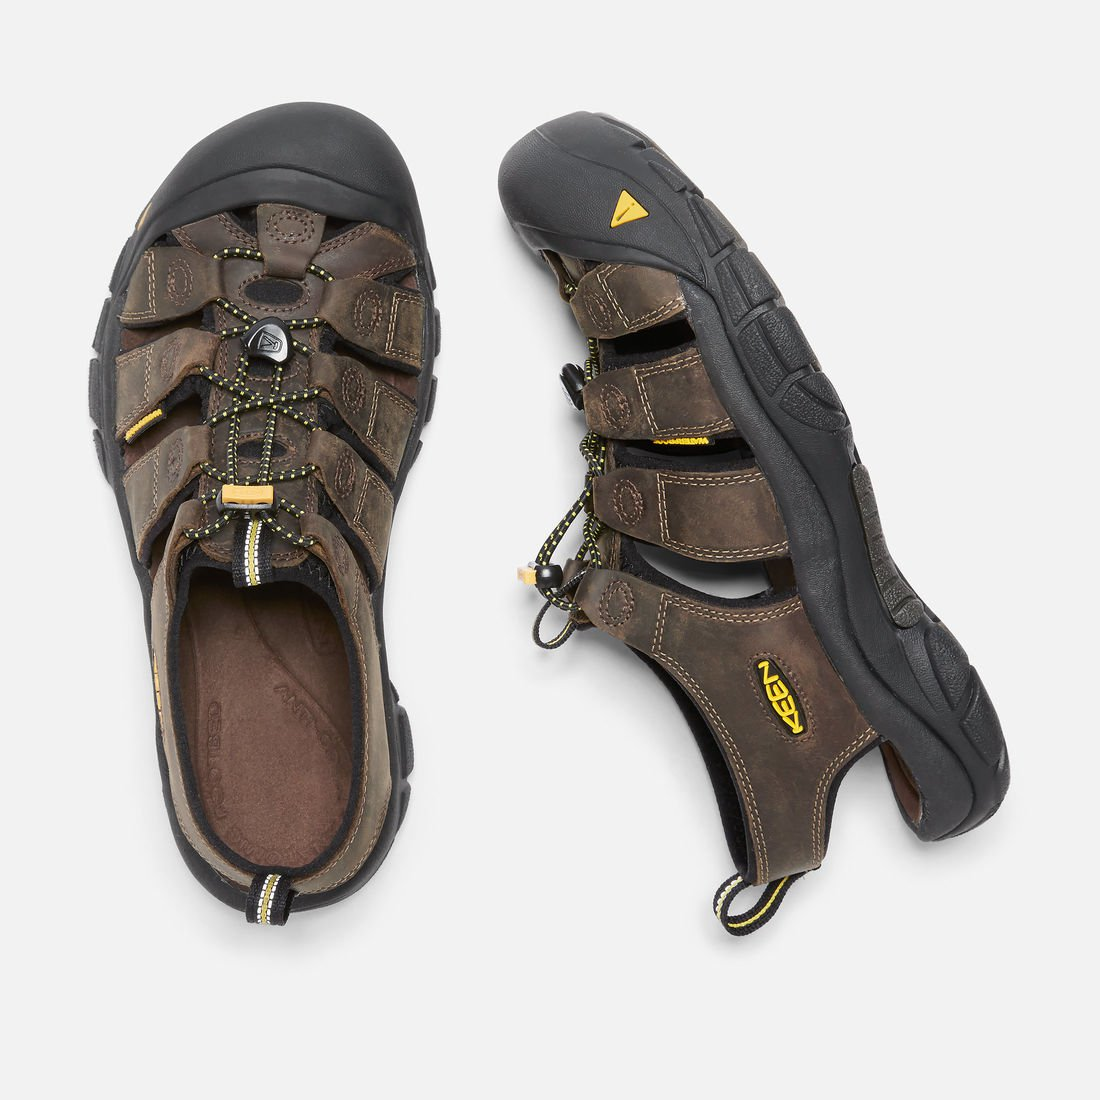 Keen Men's Newport Leather Sandals - Trailblazer Outdoors, Pickering